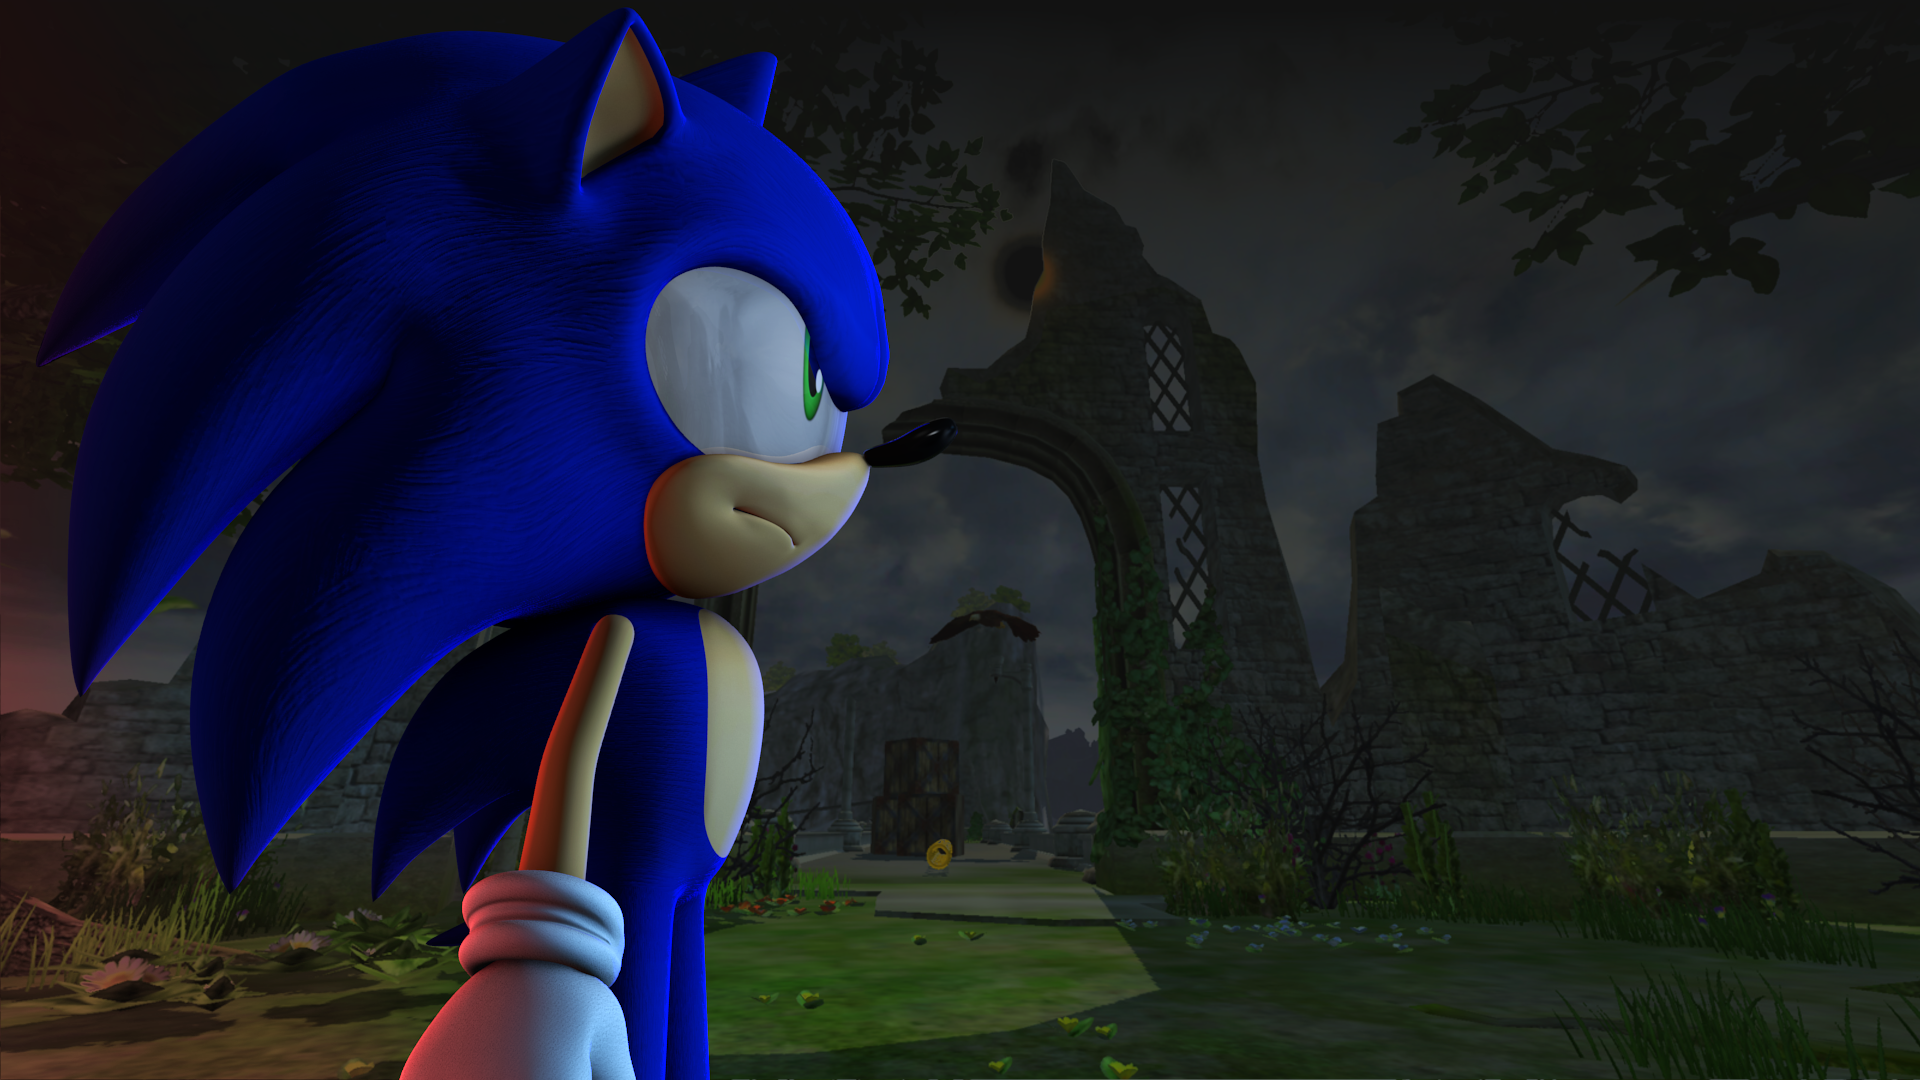 Kingdom Valley Wallpaper, Sonic Version  by Nibroc-Rock on